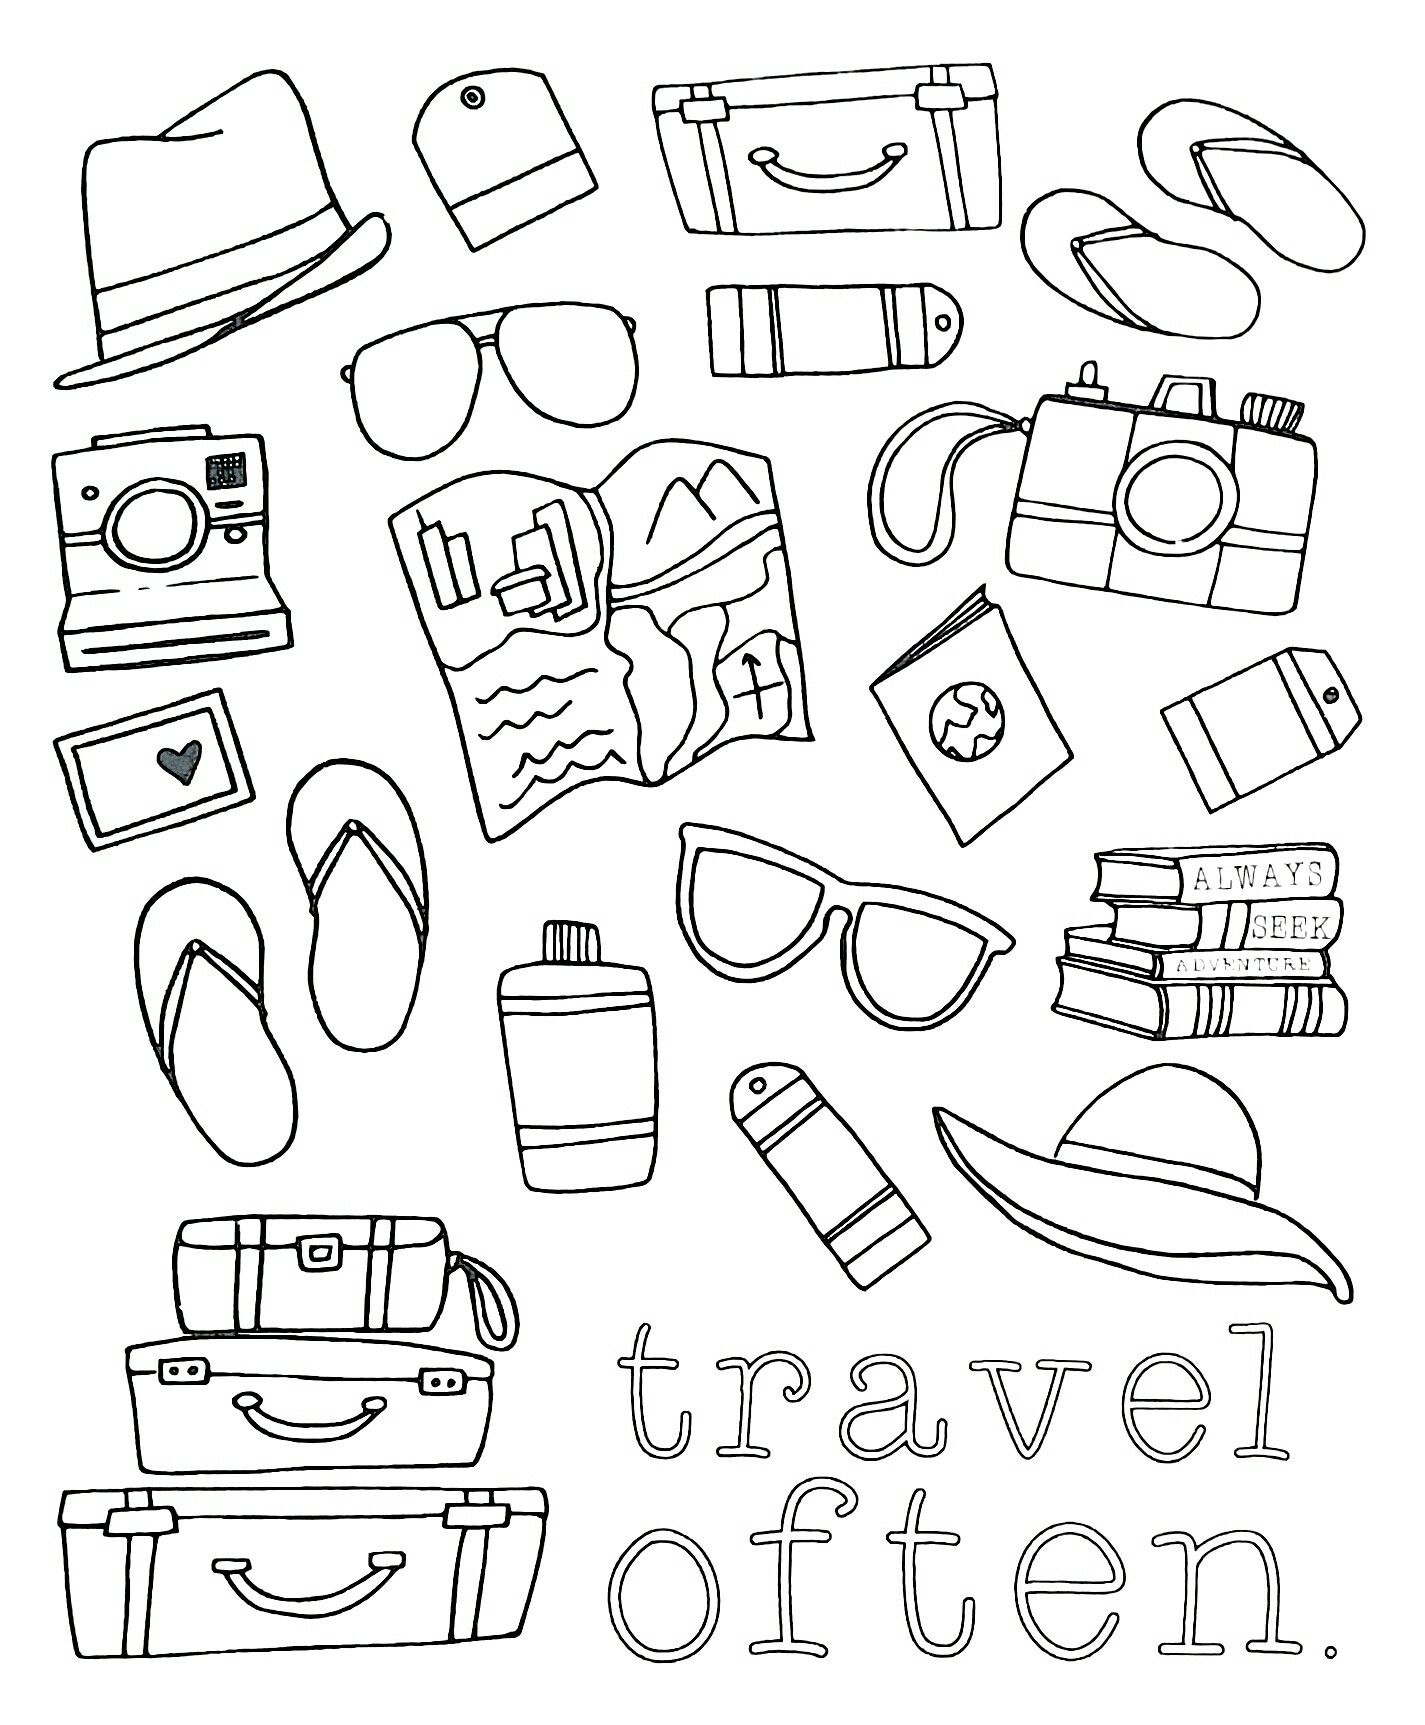 Travel Often Adult Coloring Page Bullet Journal Decoration Coloring Books Travel Book Diy